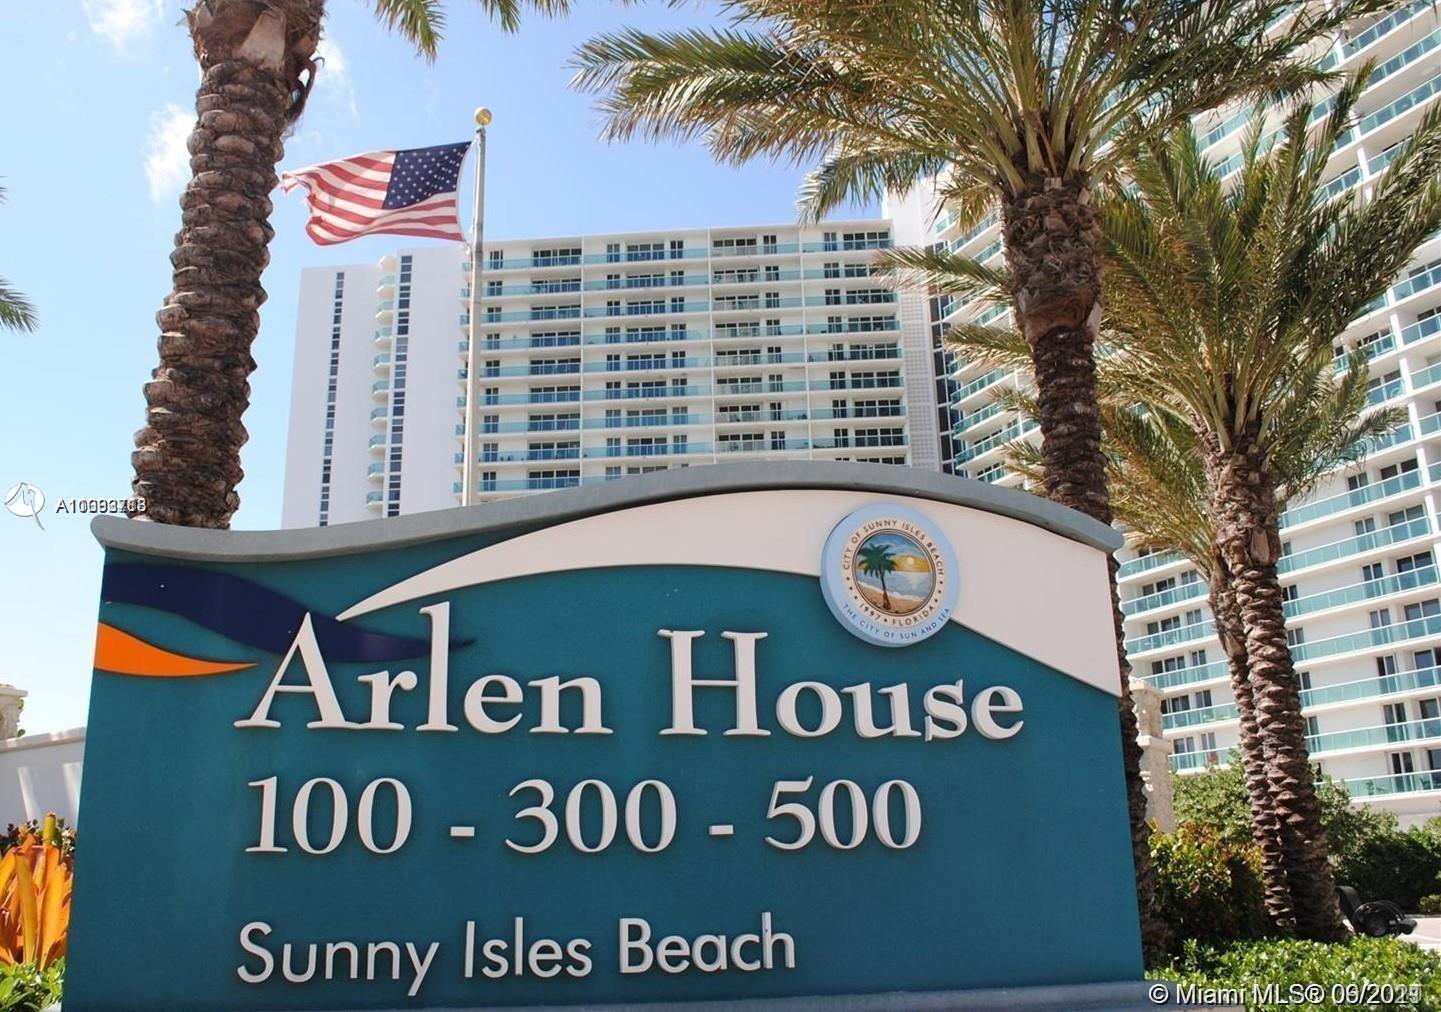 STEPS AWAY FROM WORLD FAMOUS HAULOVER BEACH! Welcome to Arlen House East in the heart of Florida's R